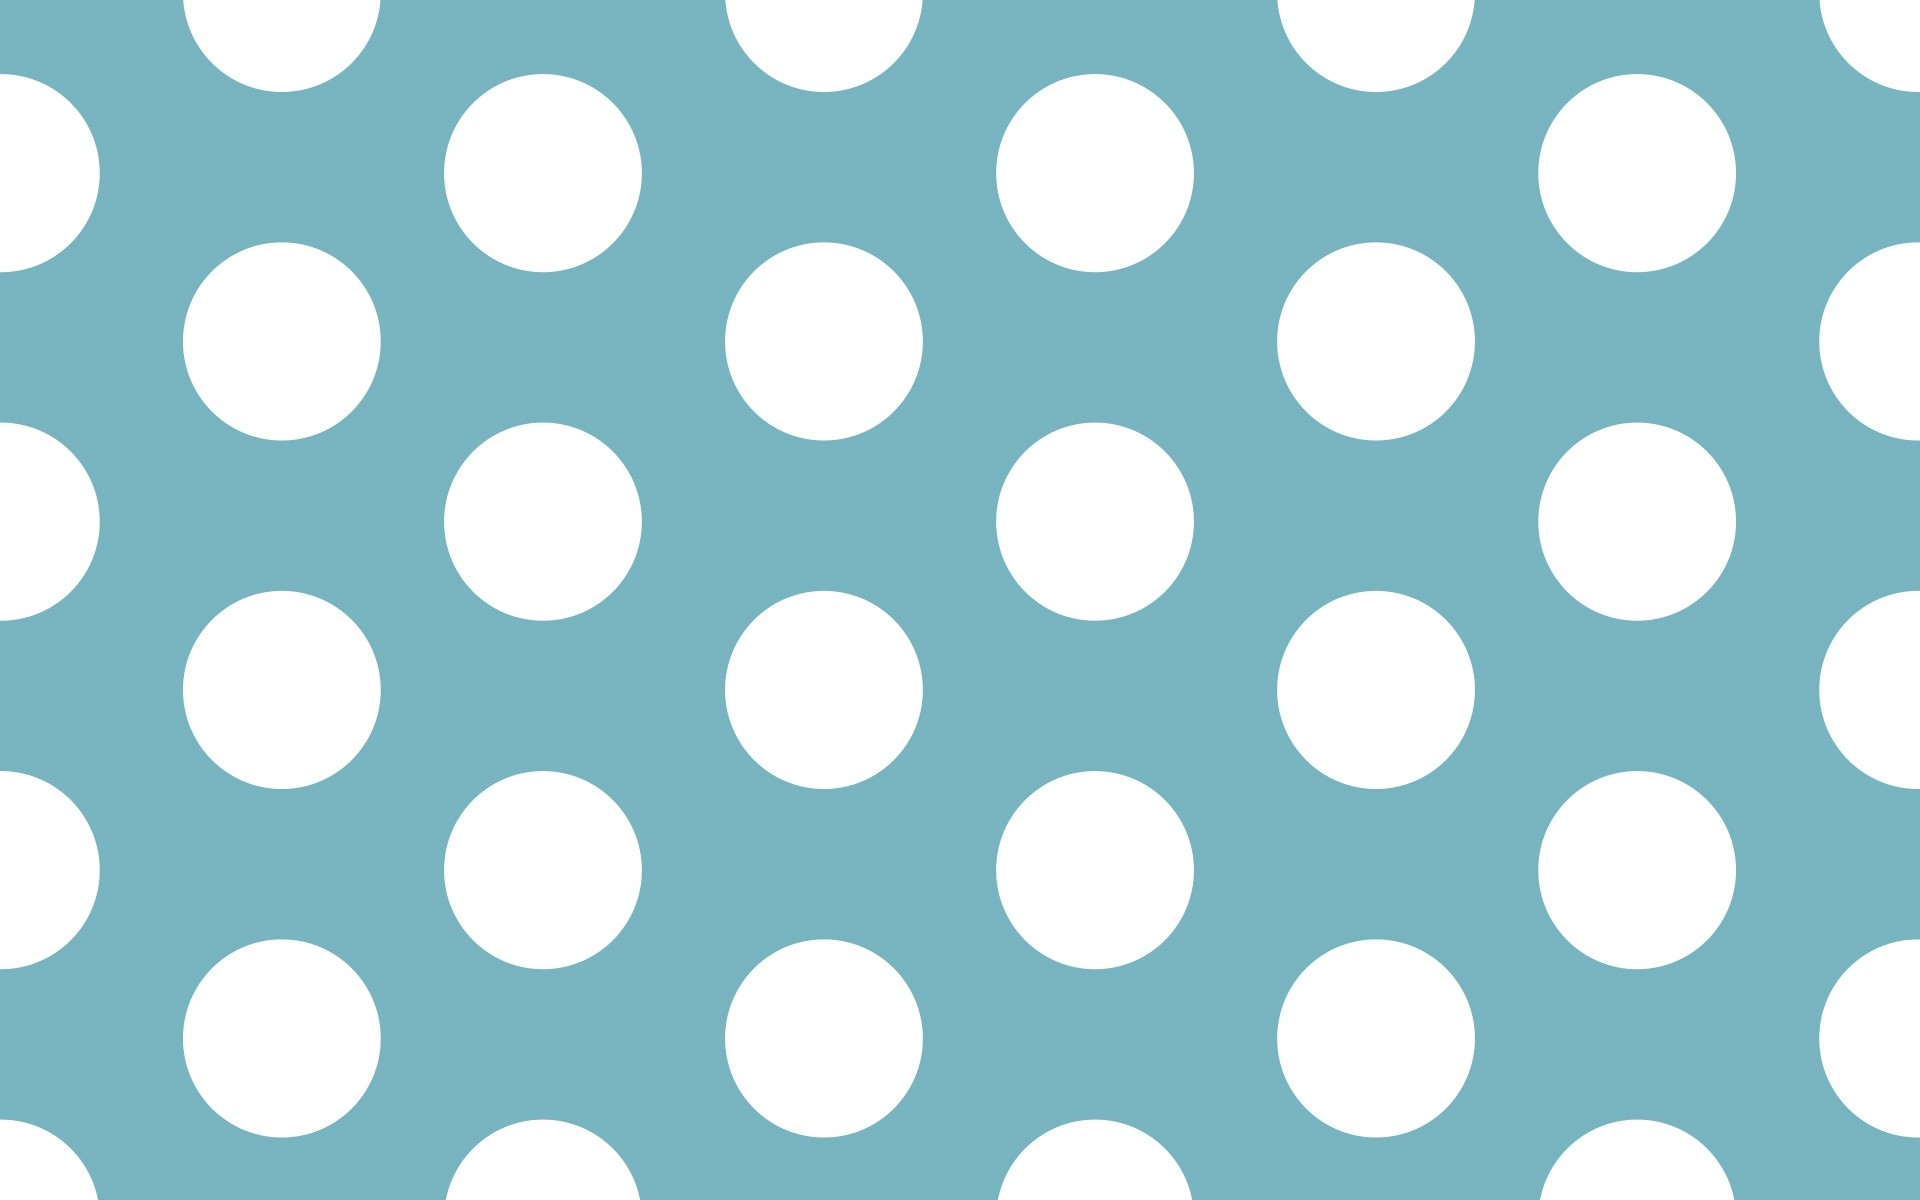 cute polka dot wallpaper 41 images